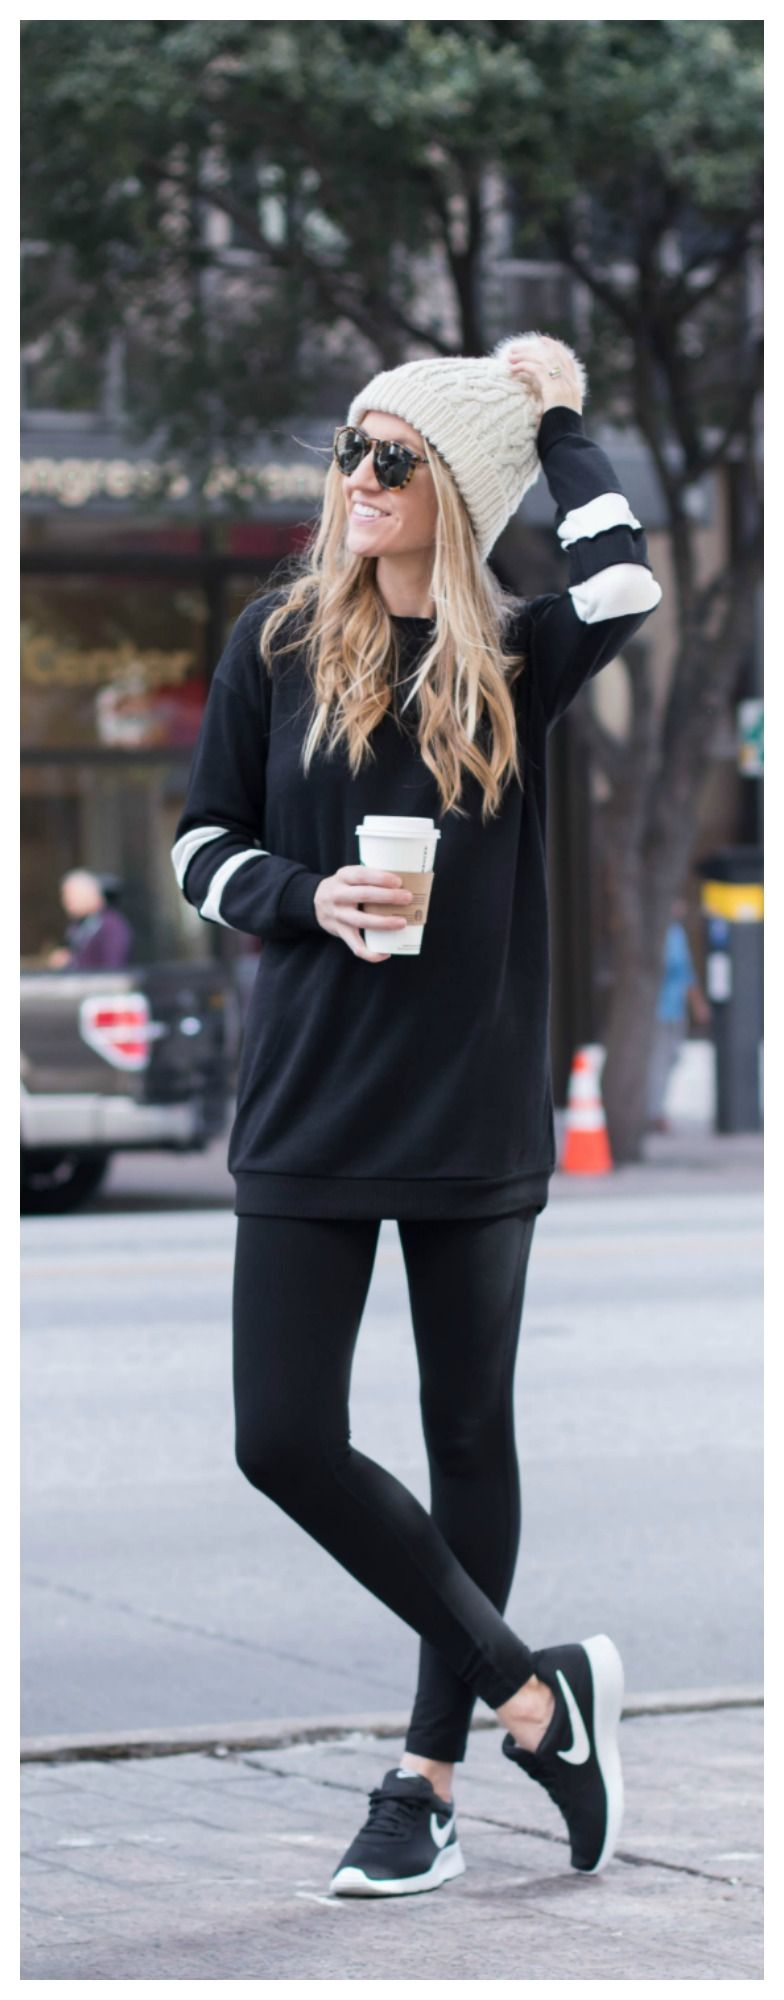 the perfect winter outfit // beanie, leggings, tunic sweater, and